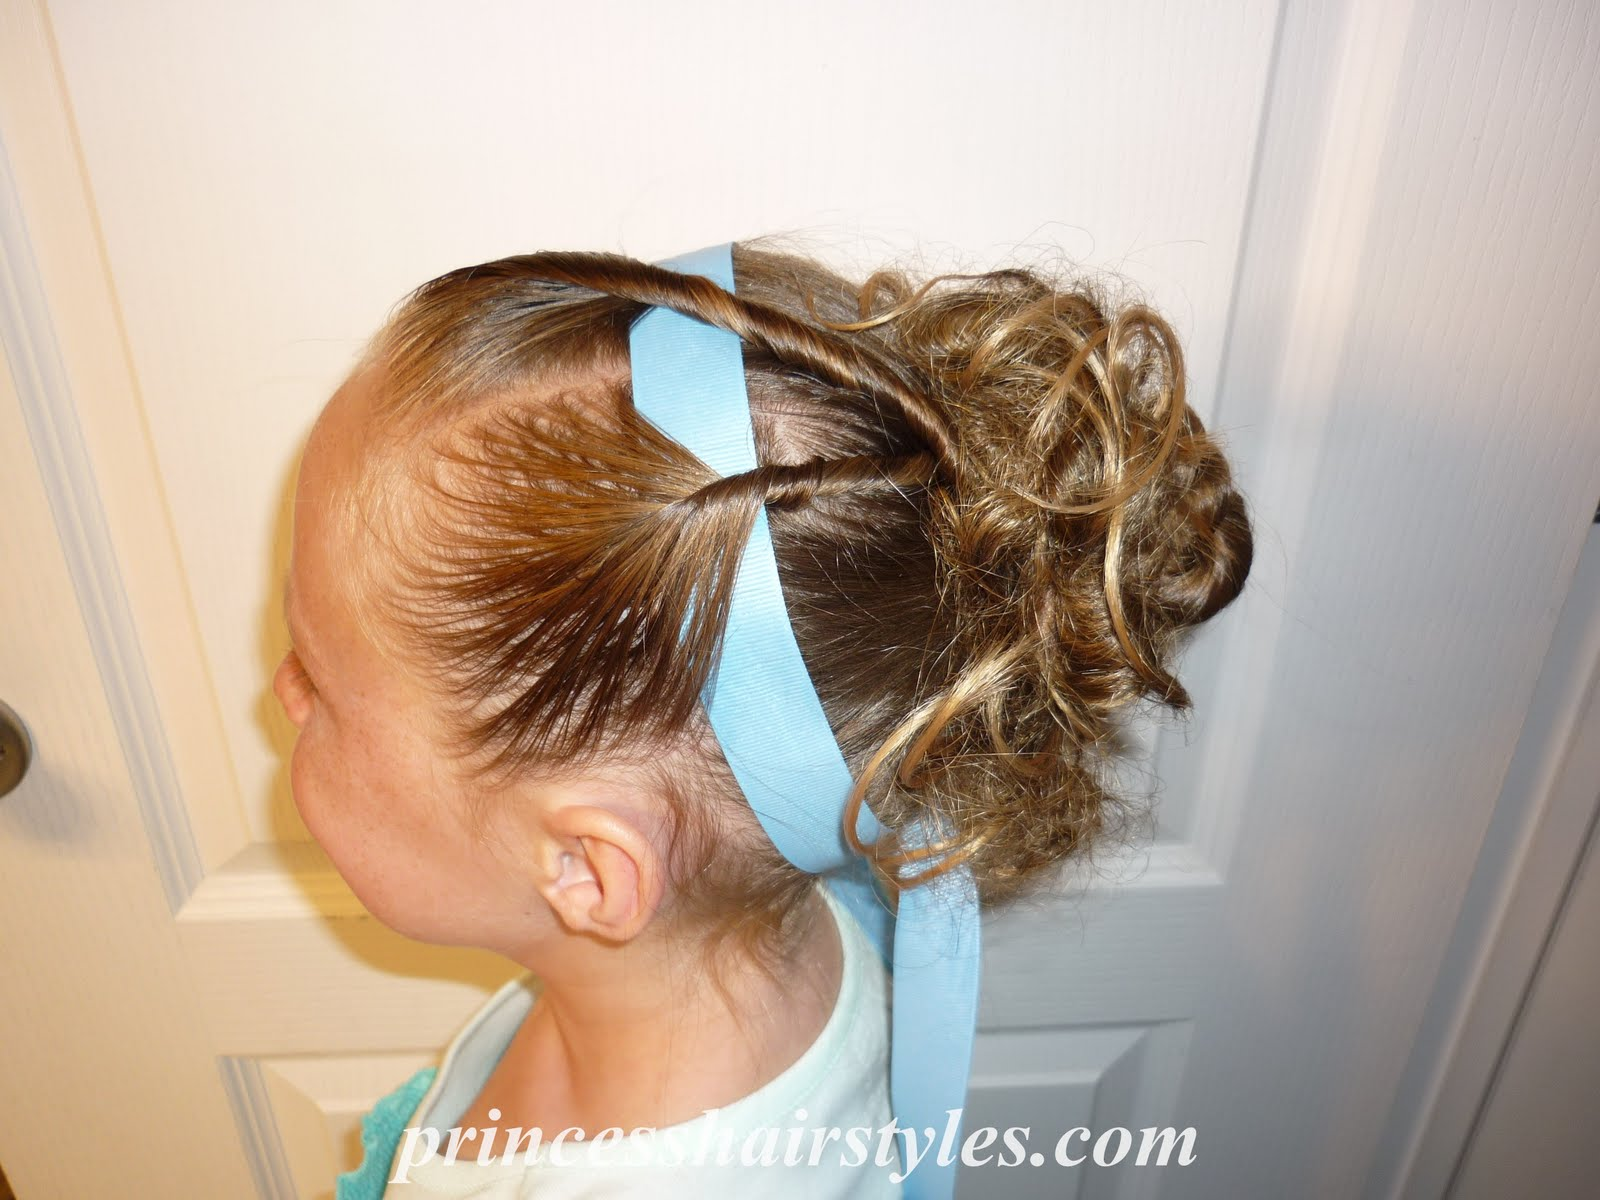 Hair Styles For Spring: Hairstyles For Dance Competition, Recital